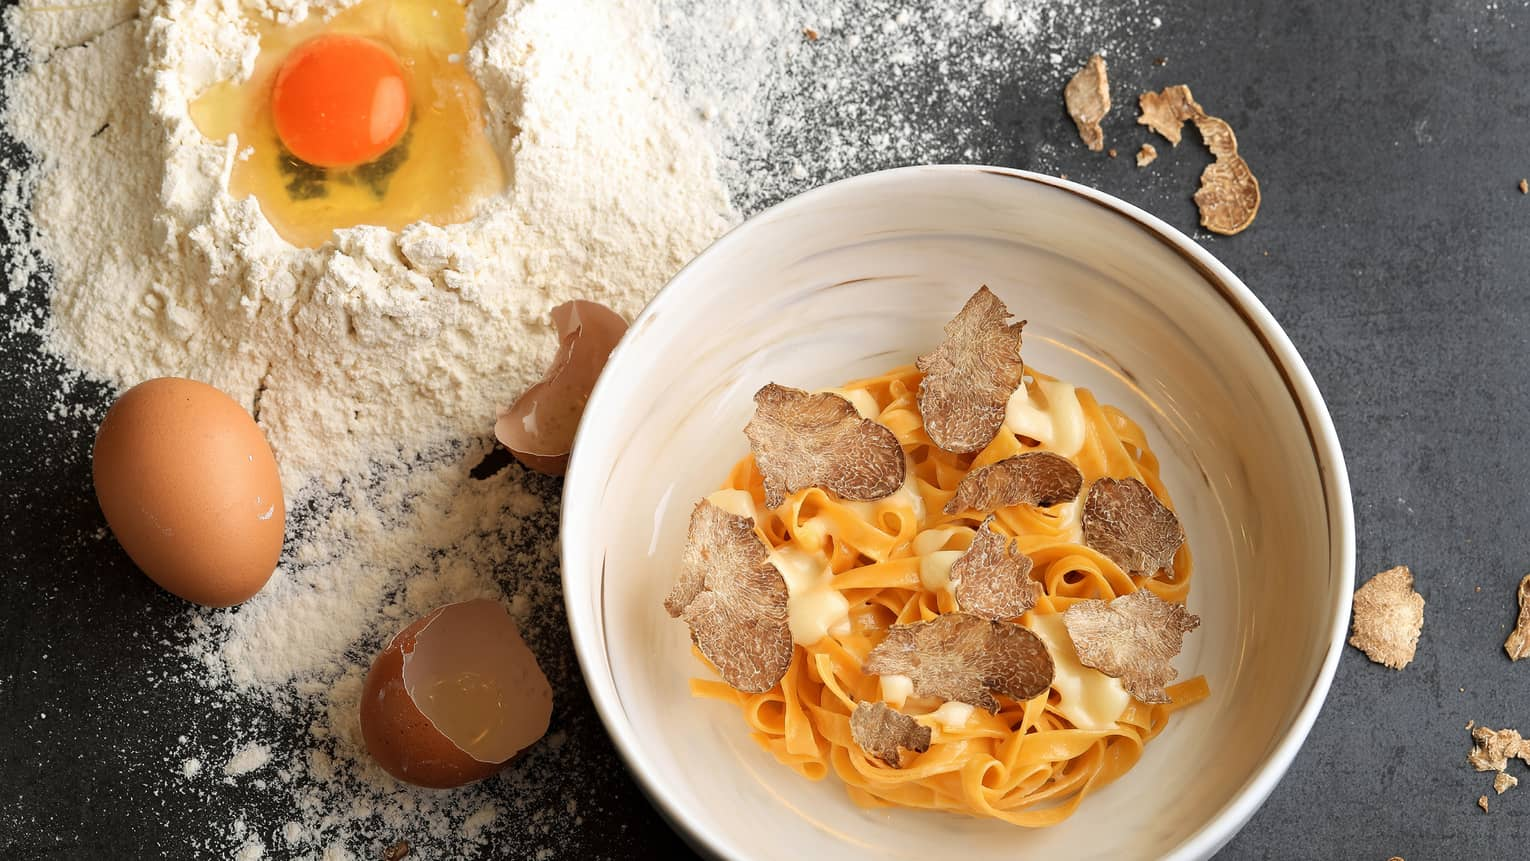 Aerial view of Truffle Spaghetti with mushroom garnish in bowl, cracked egg shells and powdered flour on counter